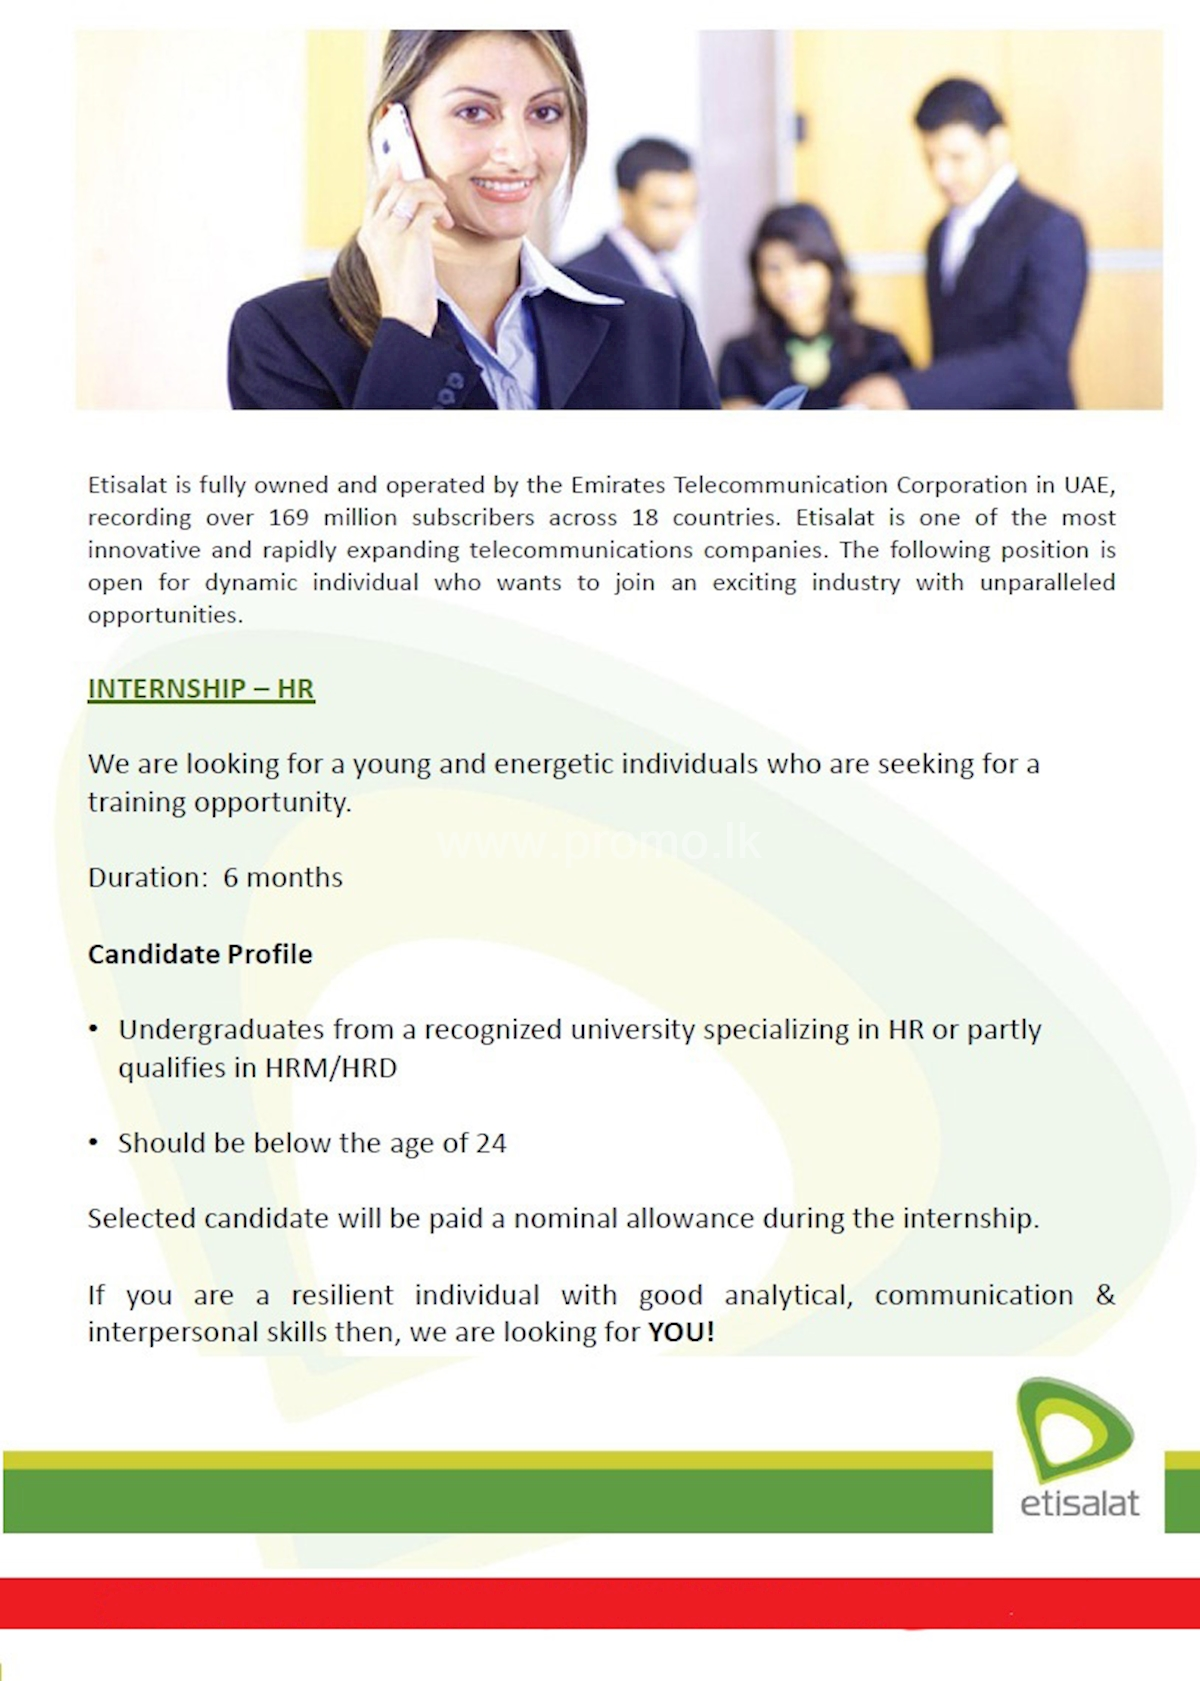 Internship - HR at Etisalat